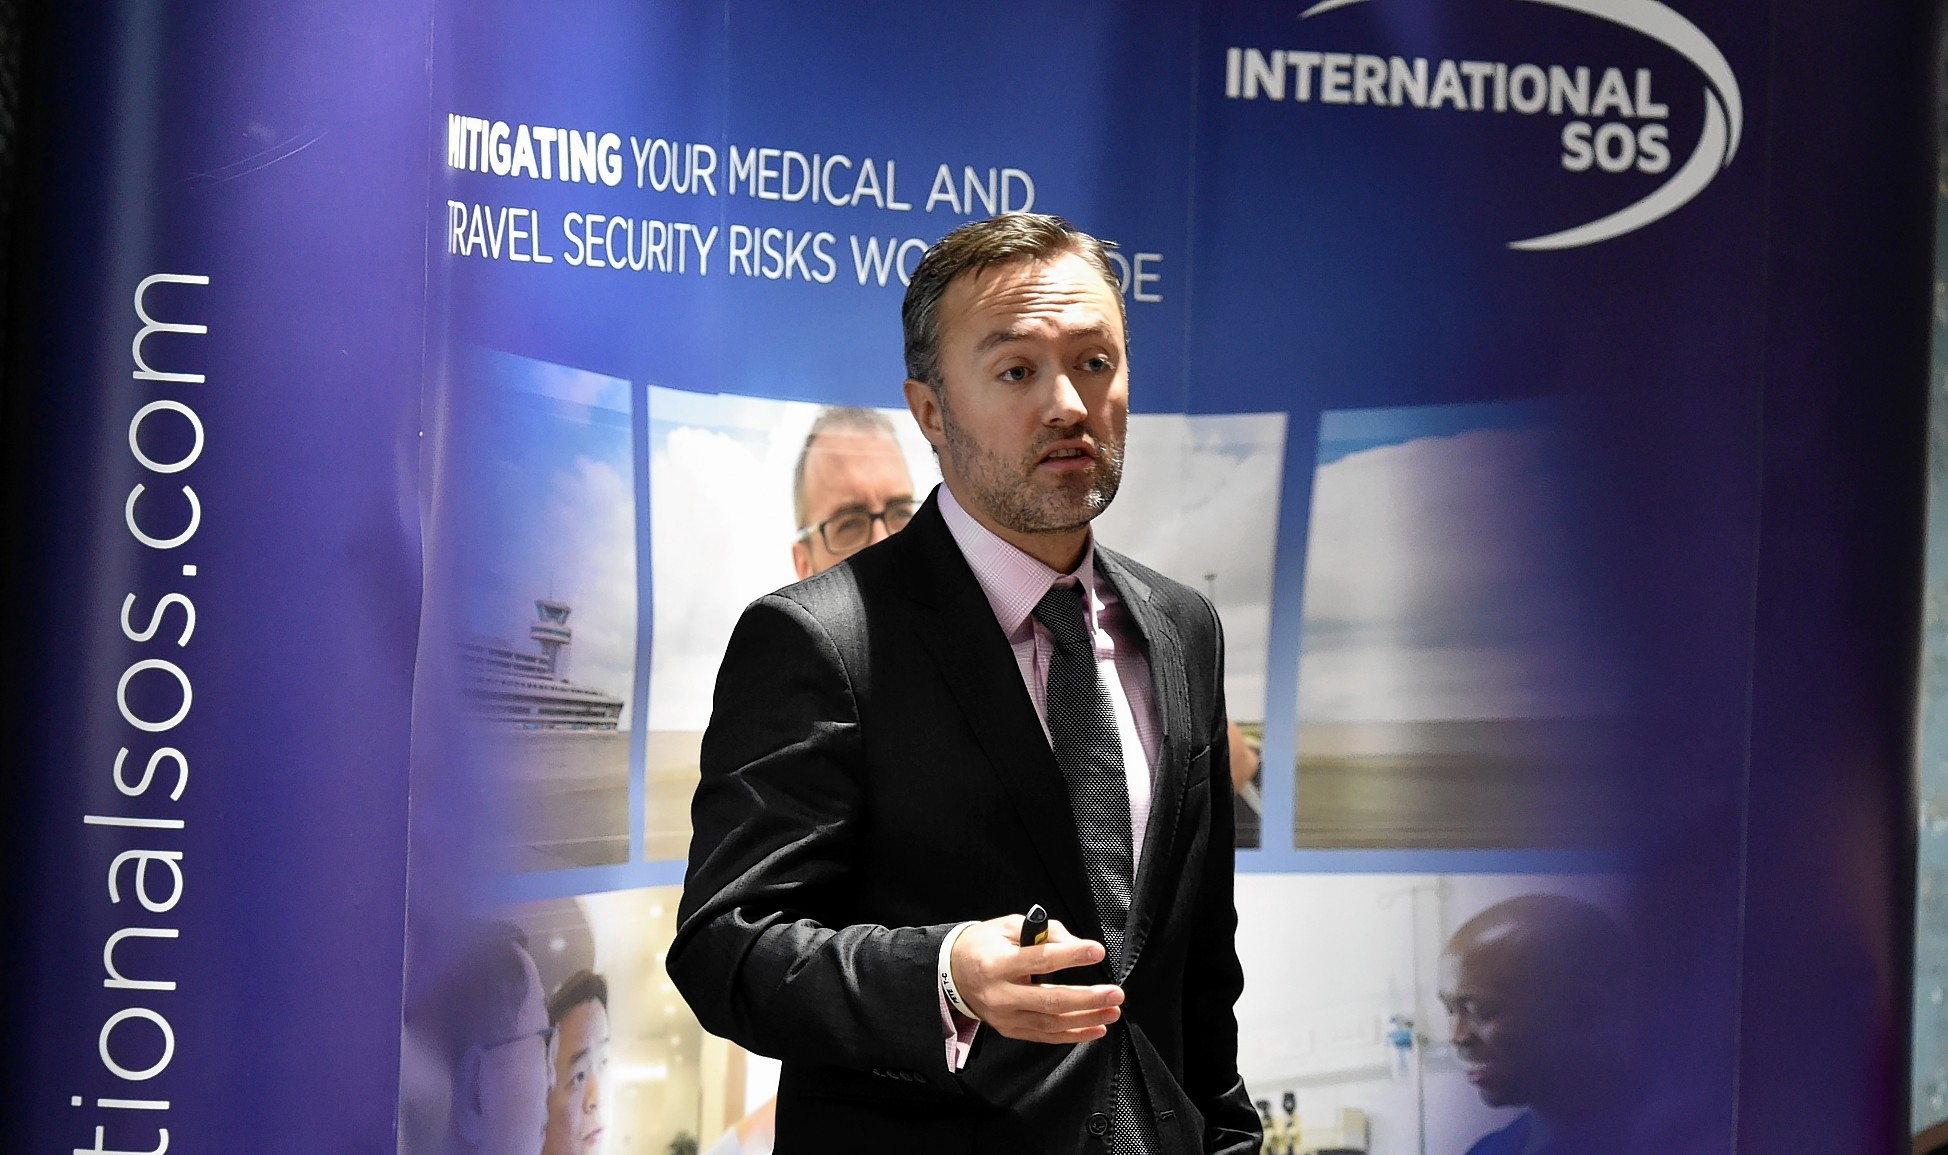 Peter Cooper, Regional Security Manager UK and Ireland, Information and Tracking, International SOS. Picture by COLIN RENNIE